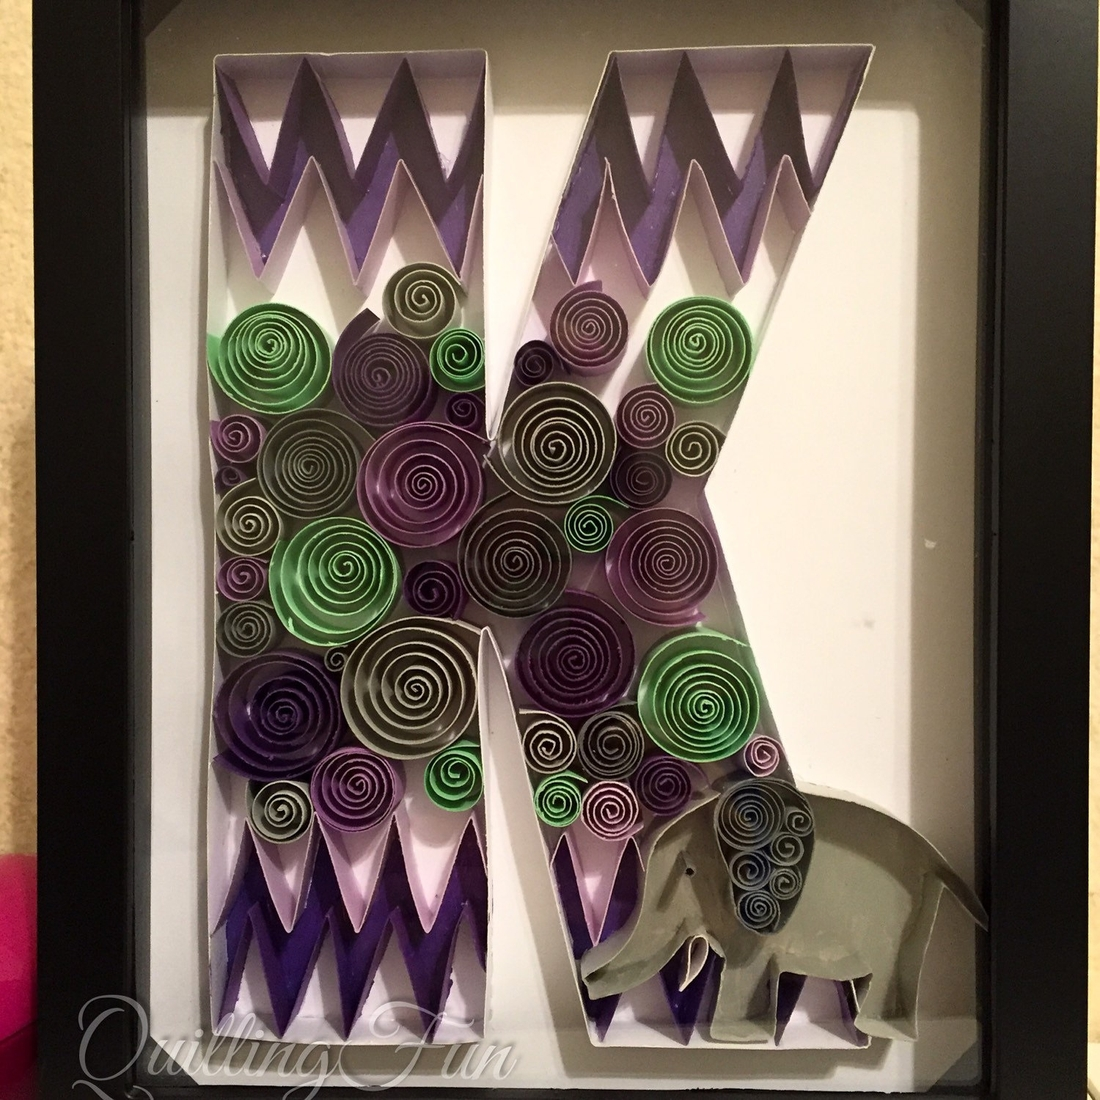 07-K-Jennifer-Stacey-Typography-with-Quilling-Drawings-www-designstack-co